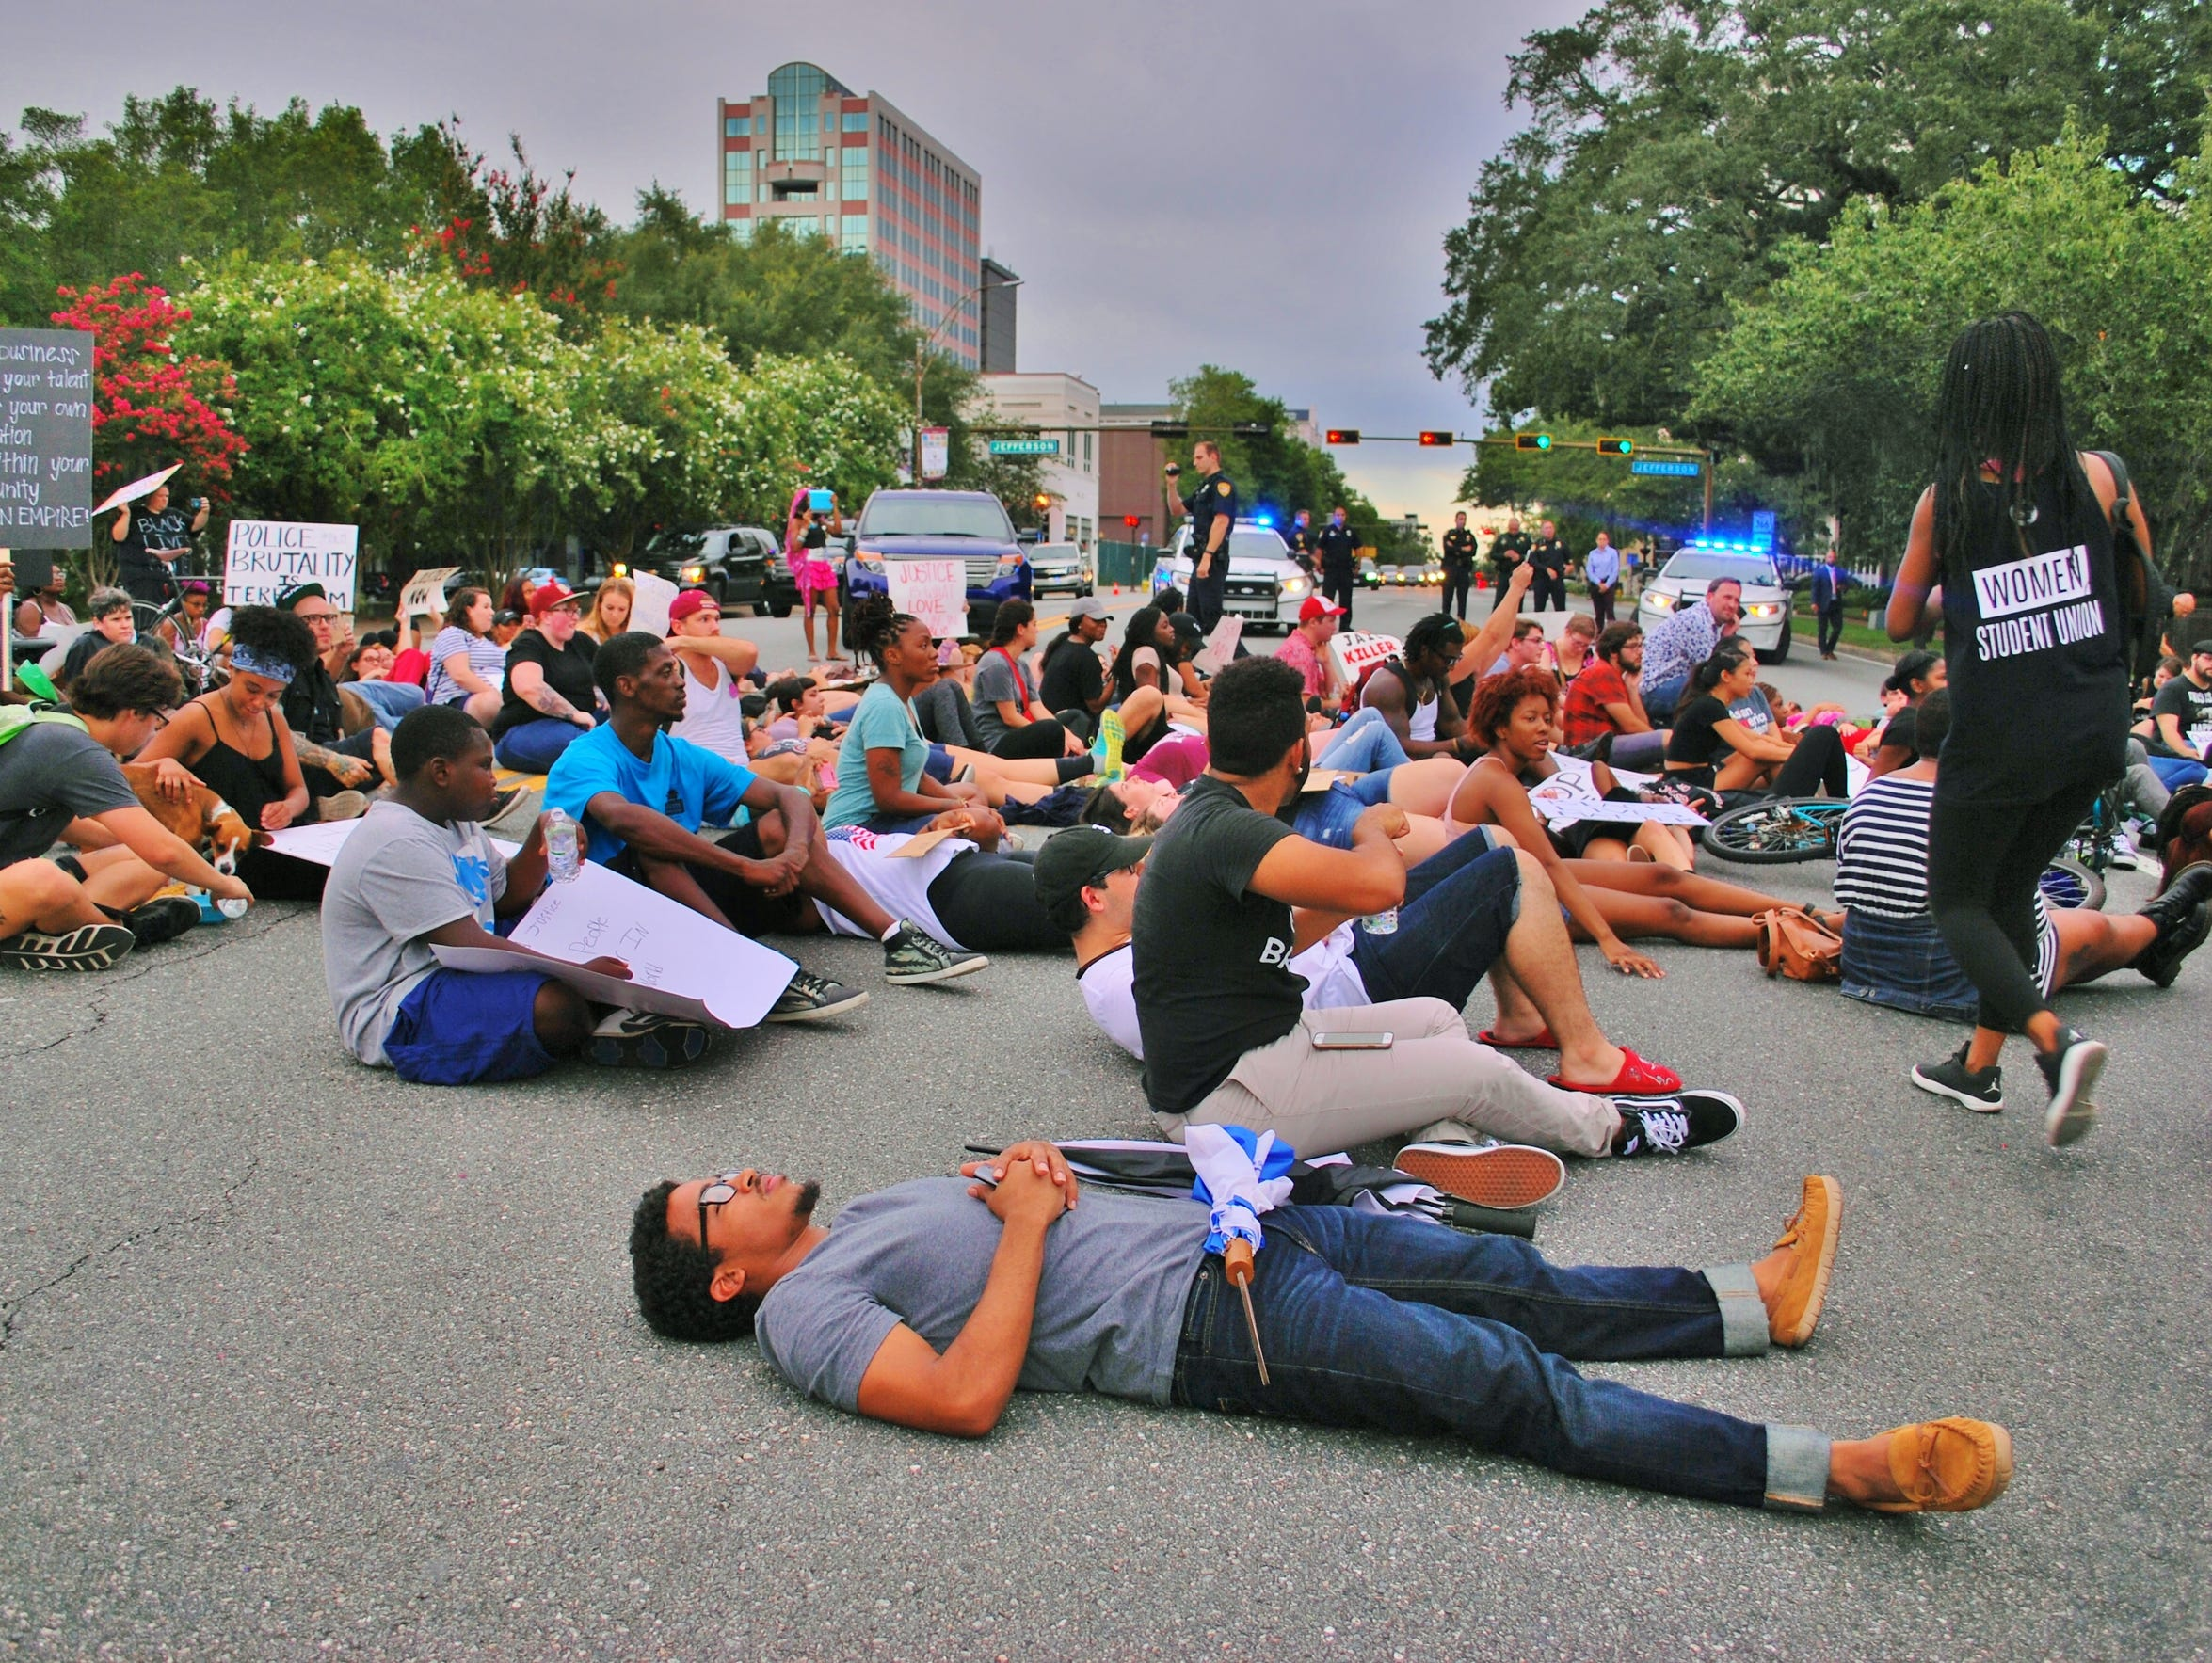 Protestors staged a die-in on Monroe Street in front